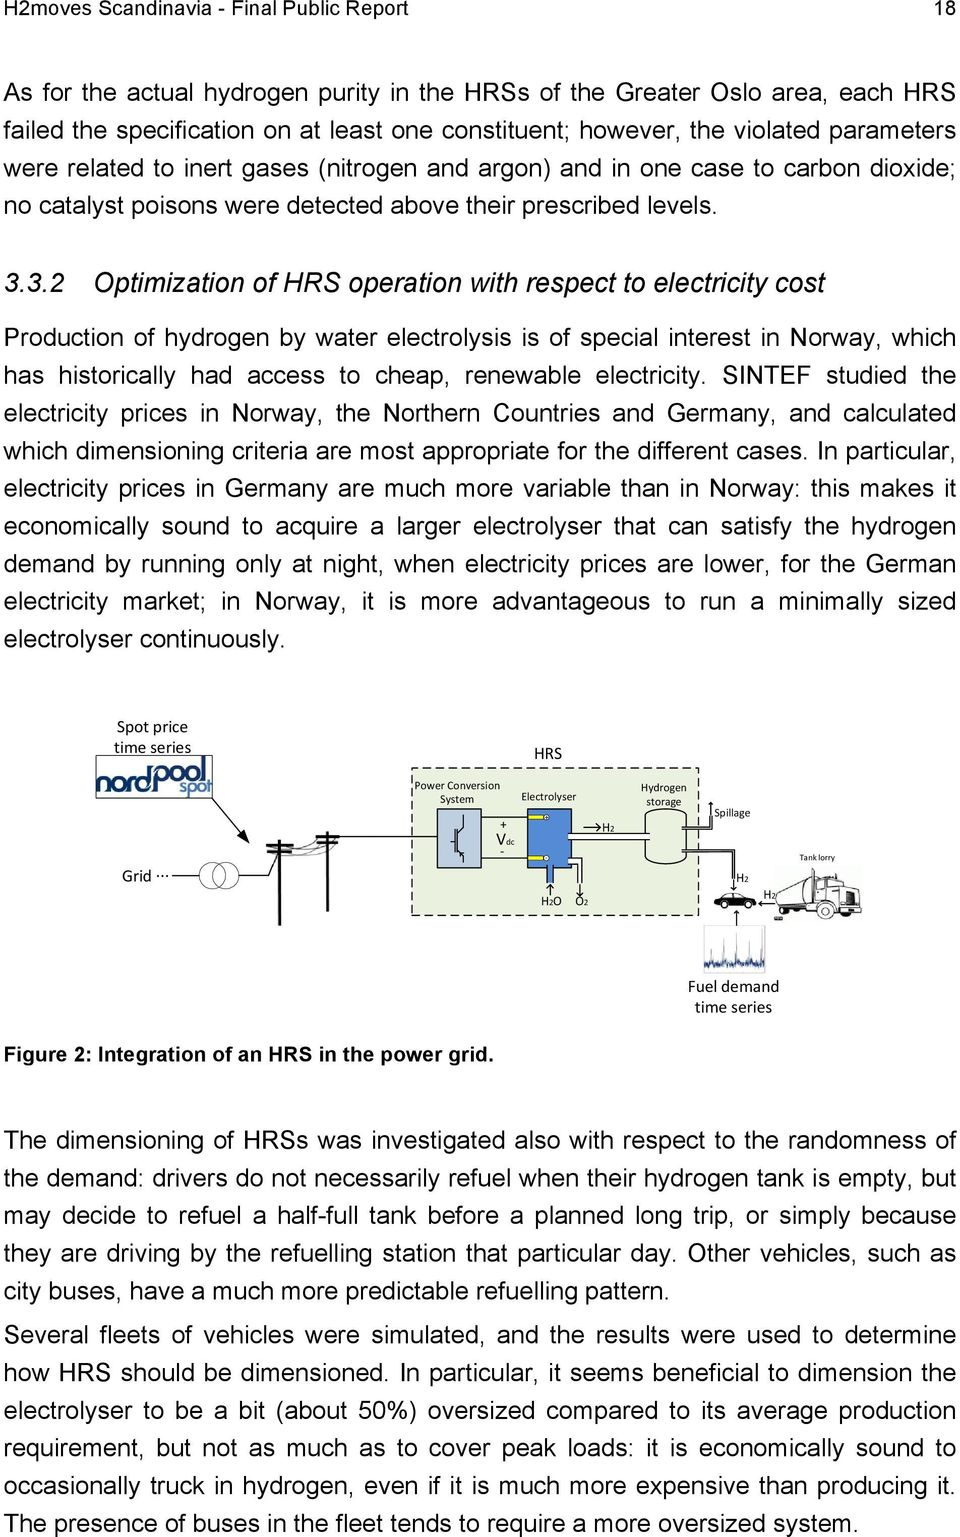 3.2 Optimization of HRS operation with respect to electricity cost Production of hydrogen by water electrolysis is of special interest in Norway, which has historically had access to cheap, renewable